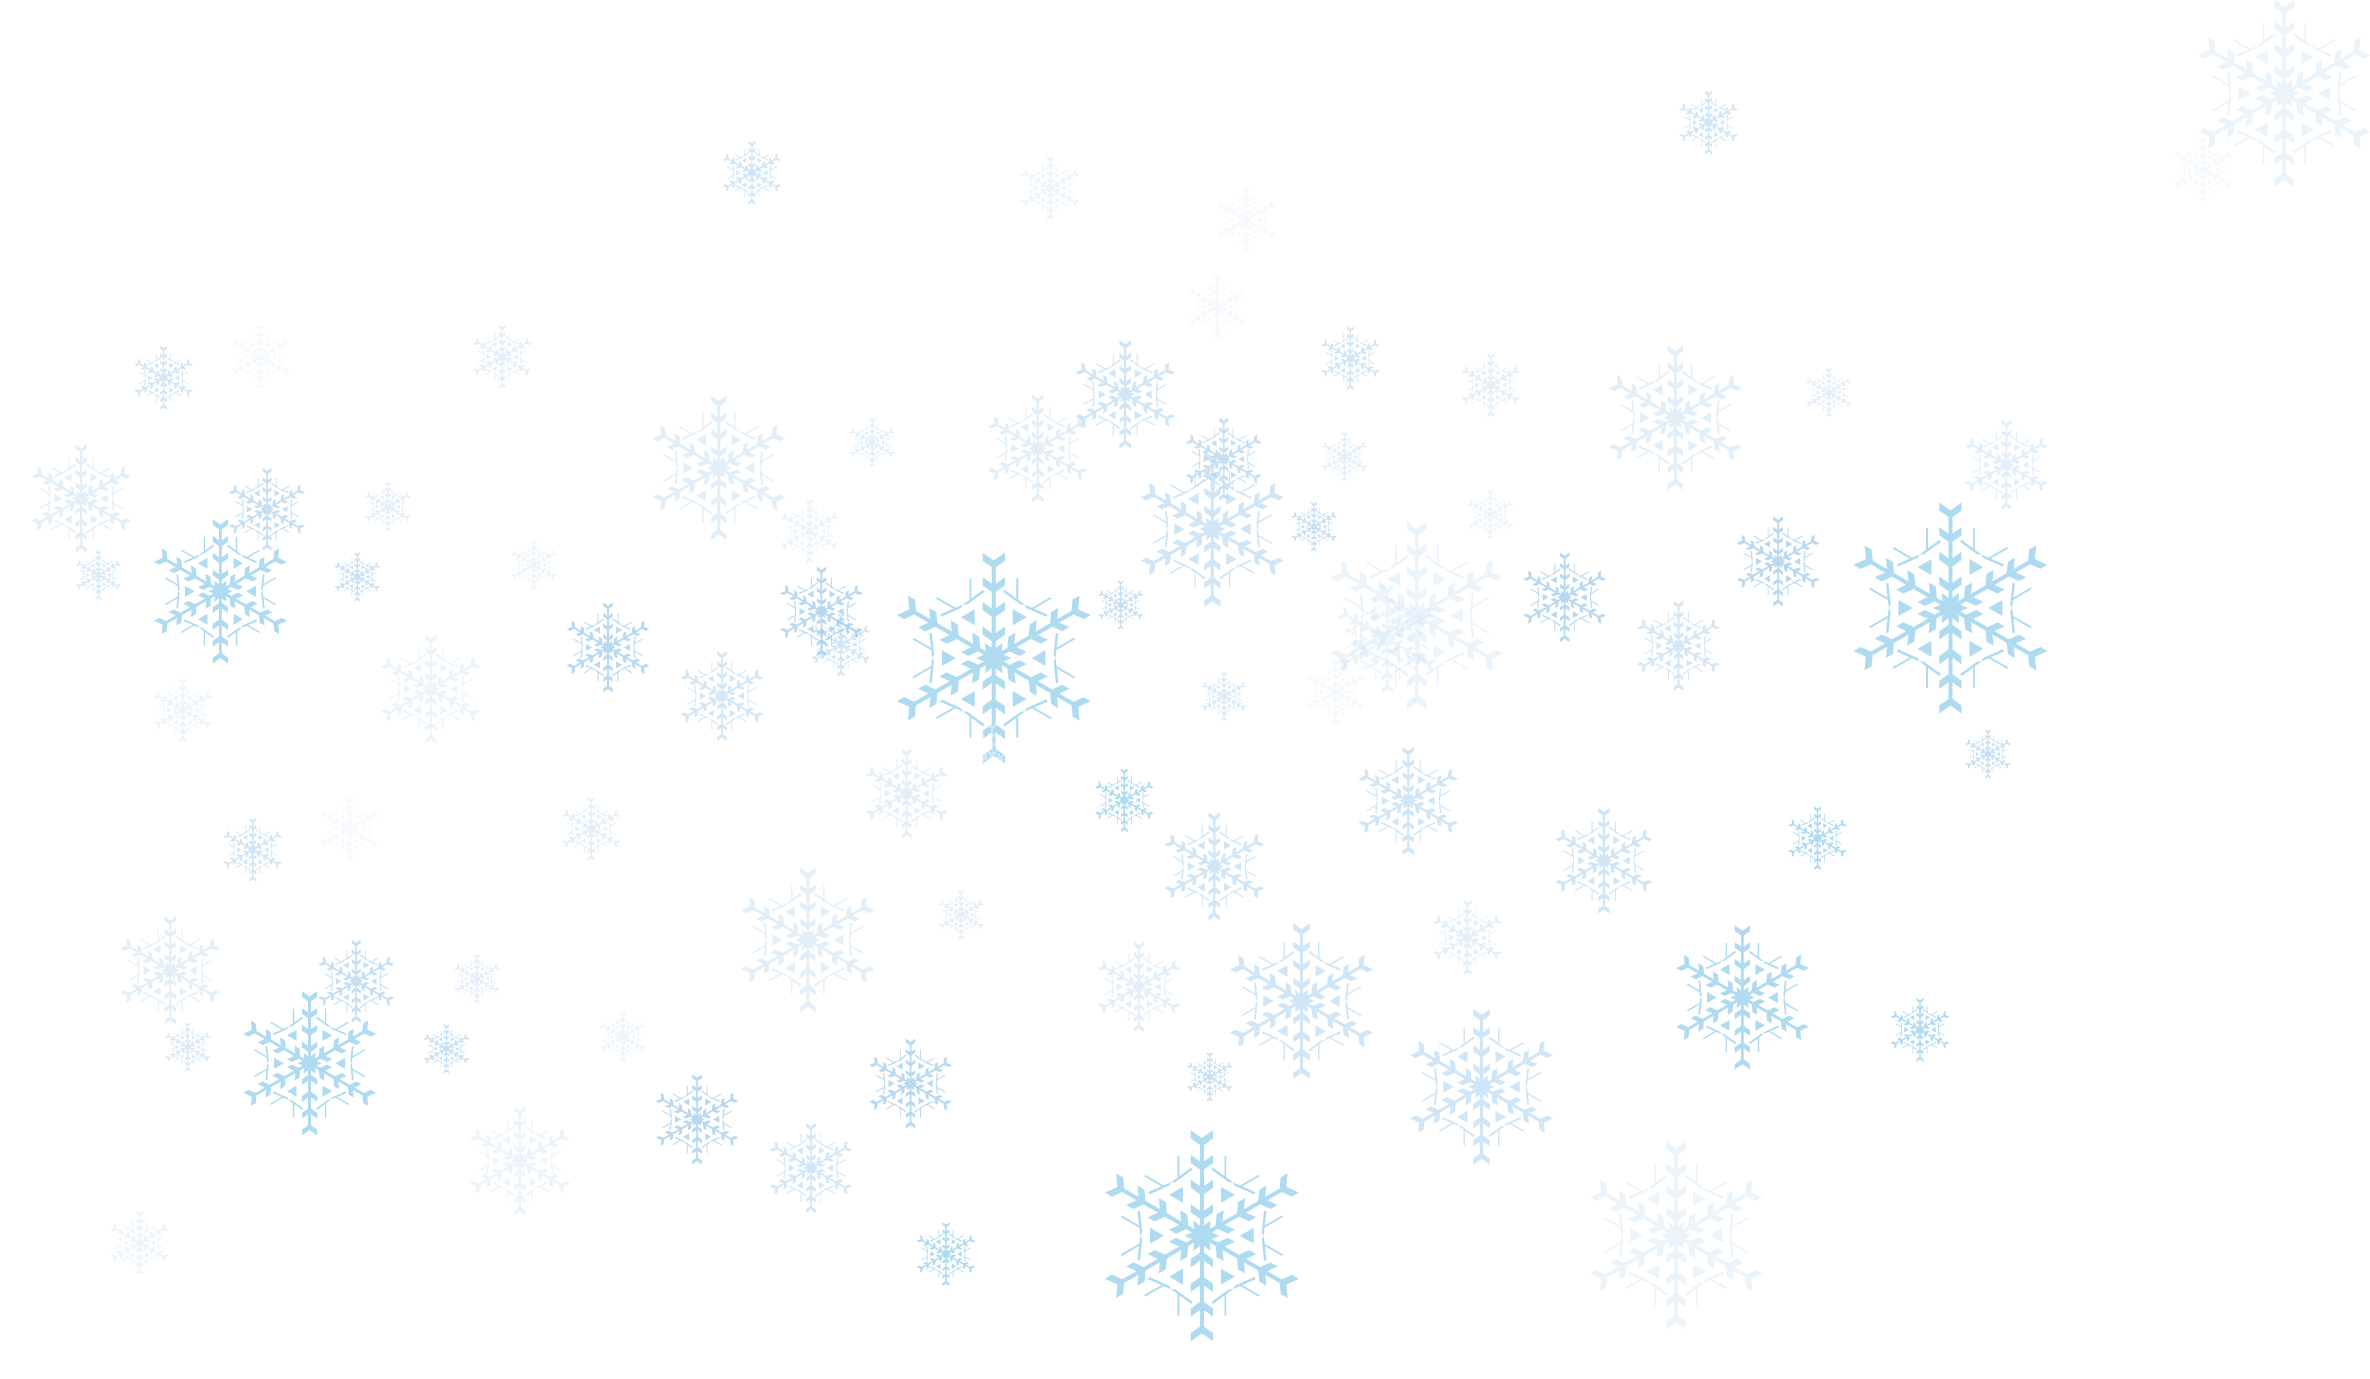 Snowflake clipart solid white graphic black and white 28+ Collection of Snowflake Clipart Background | High quality, free ... graphic black and white